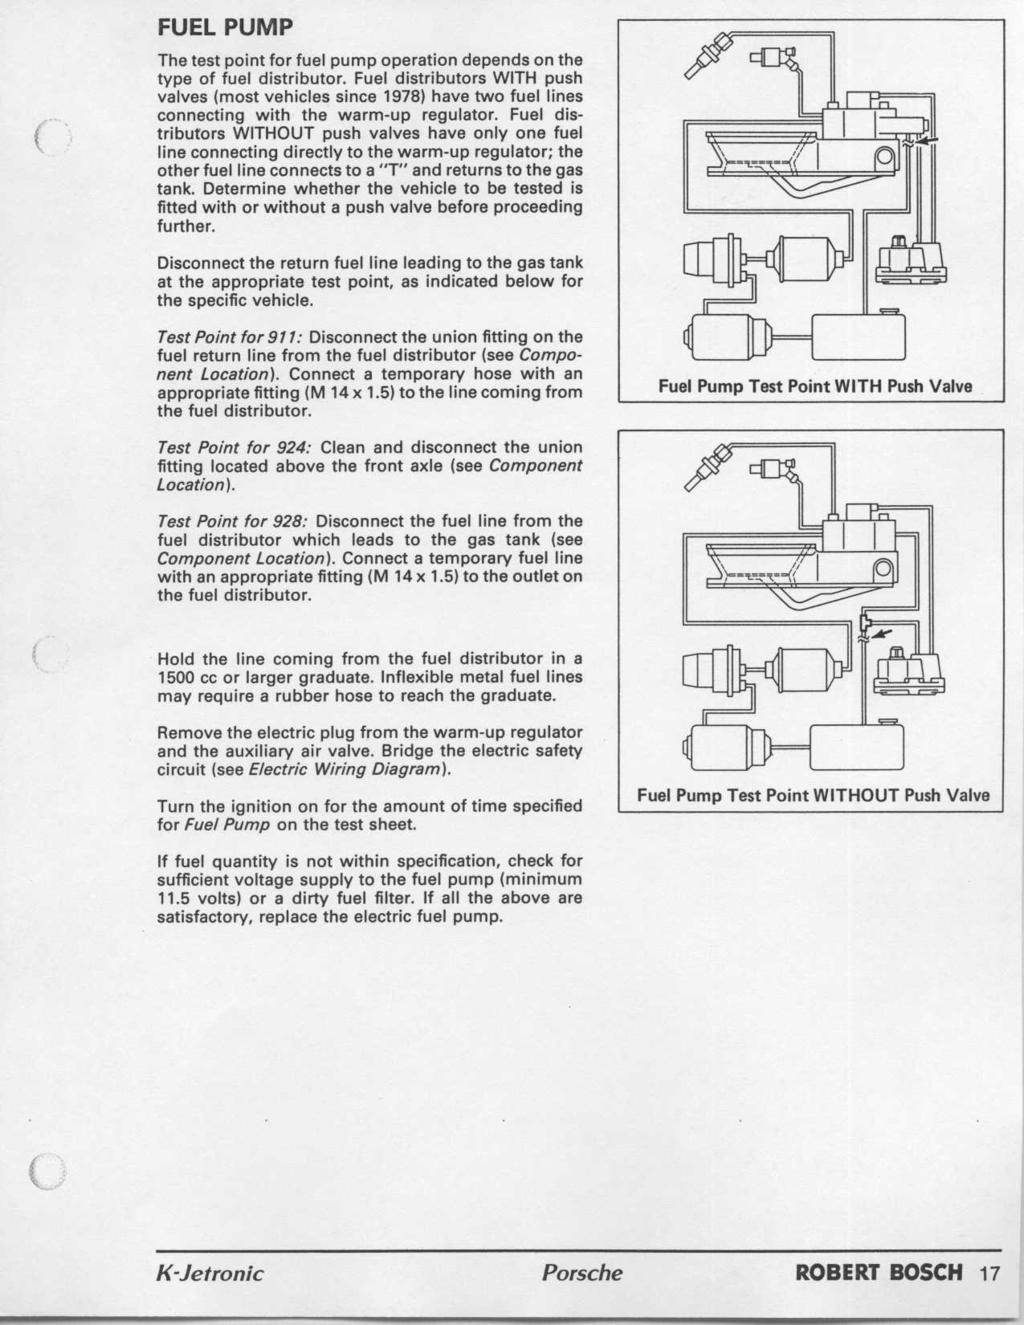 Workshop Manual Porsche K Jetronic Robert Bosch Pdf 1998 Volvo 5 0 Gl Fuel Filter Location Pump The Test Point For Operation Depends On Type Of Distributor